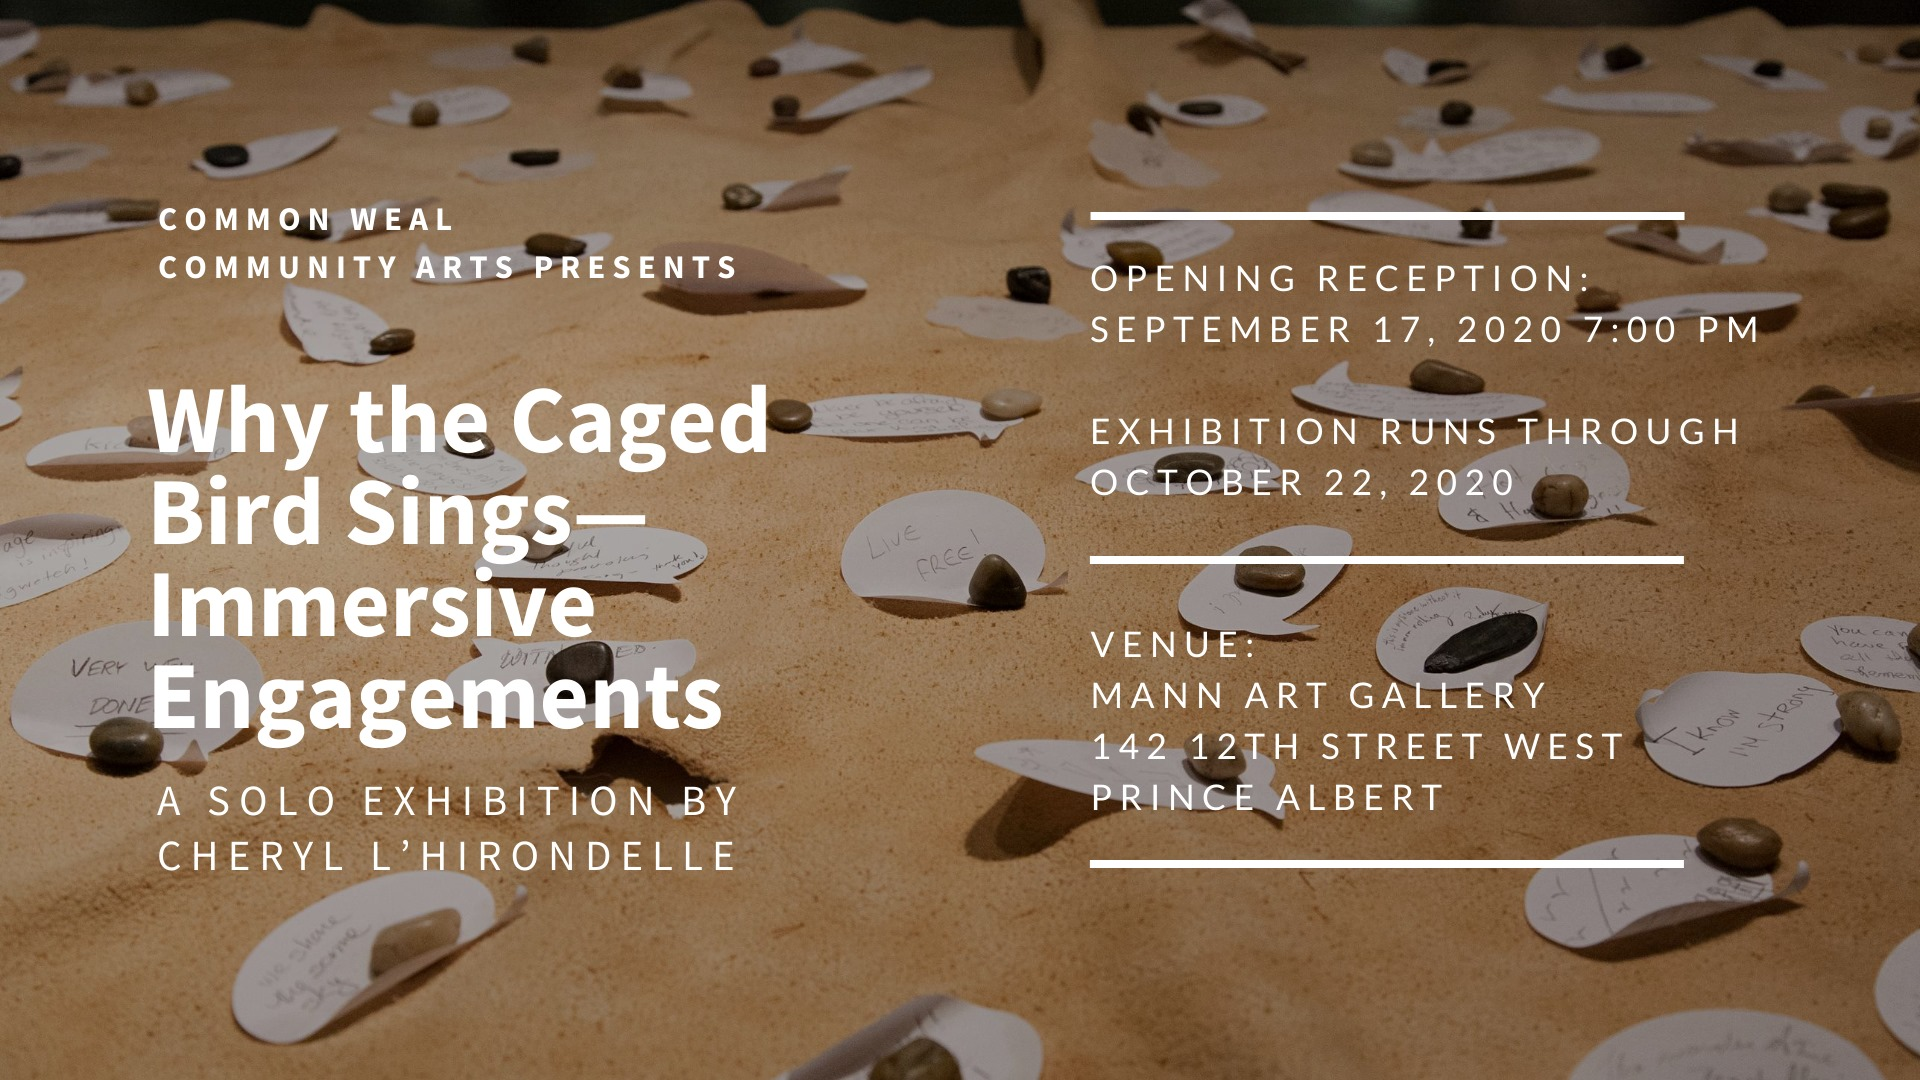 Why the Caged Bird Sings - Immersive Engagements